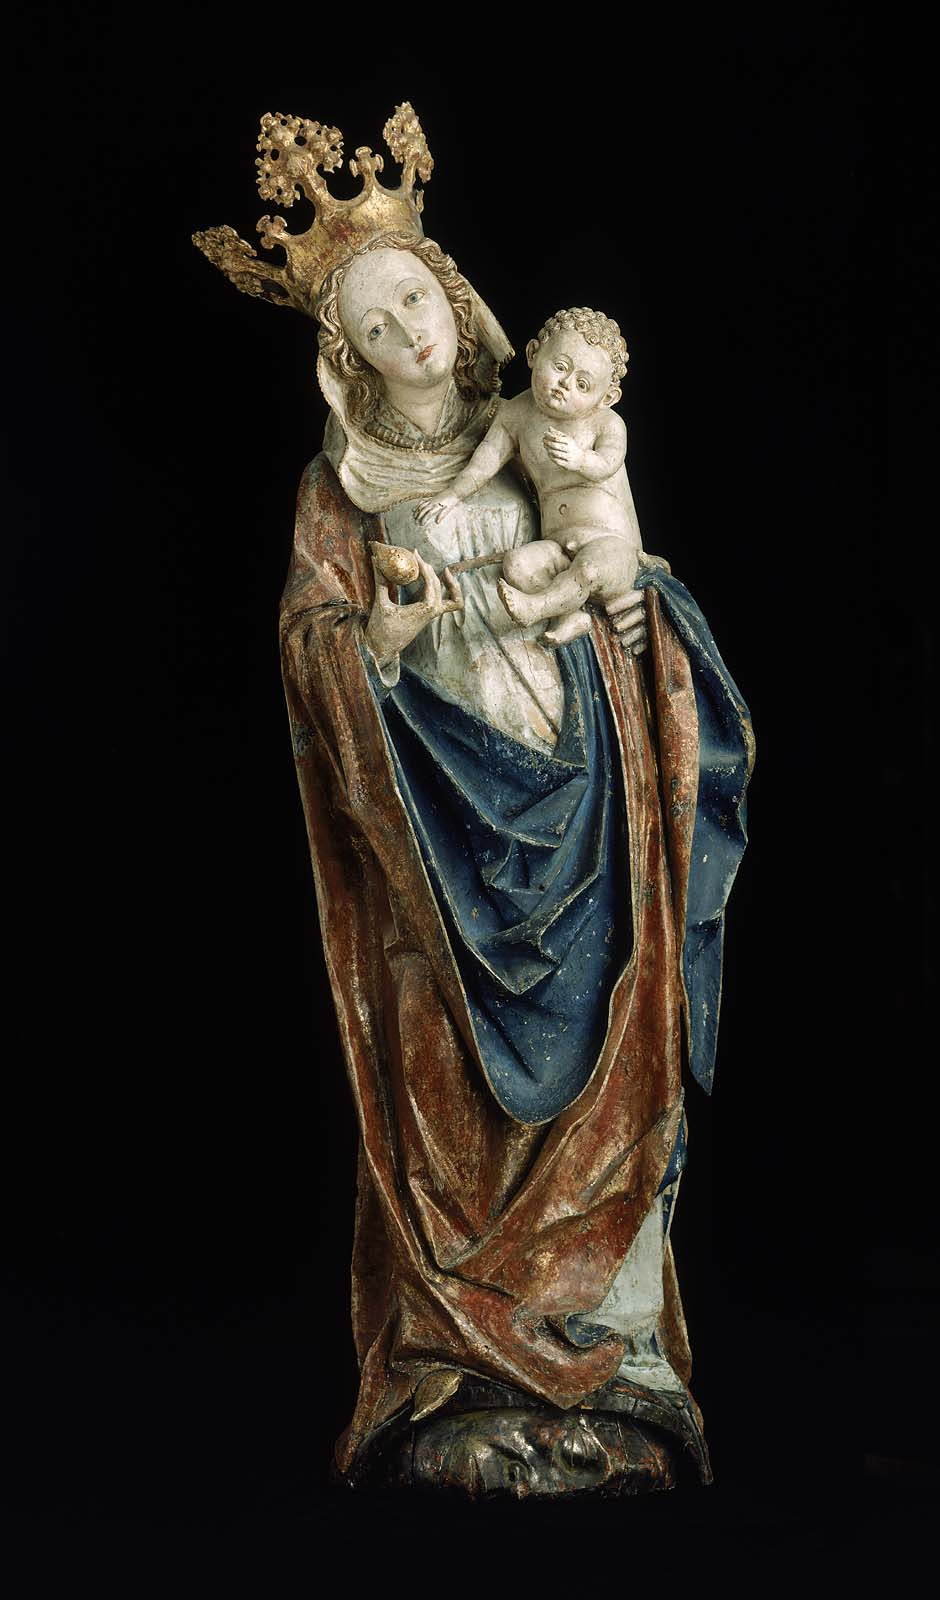 Gothic Sculpture | Museum of Fine Arts, Boston